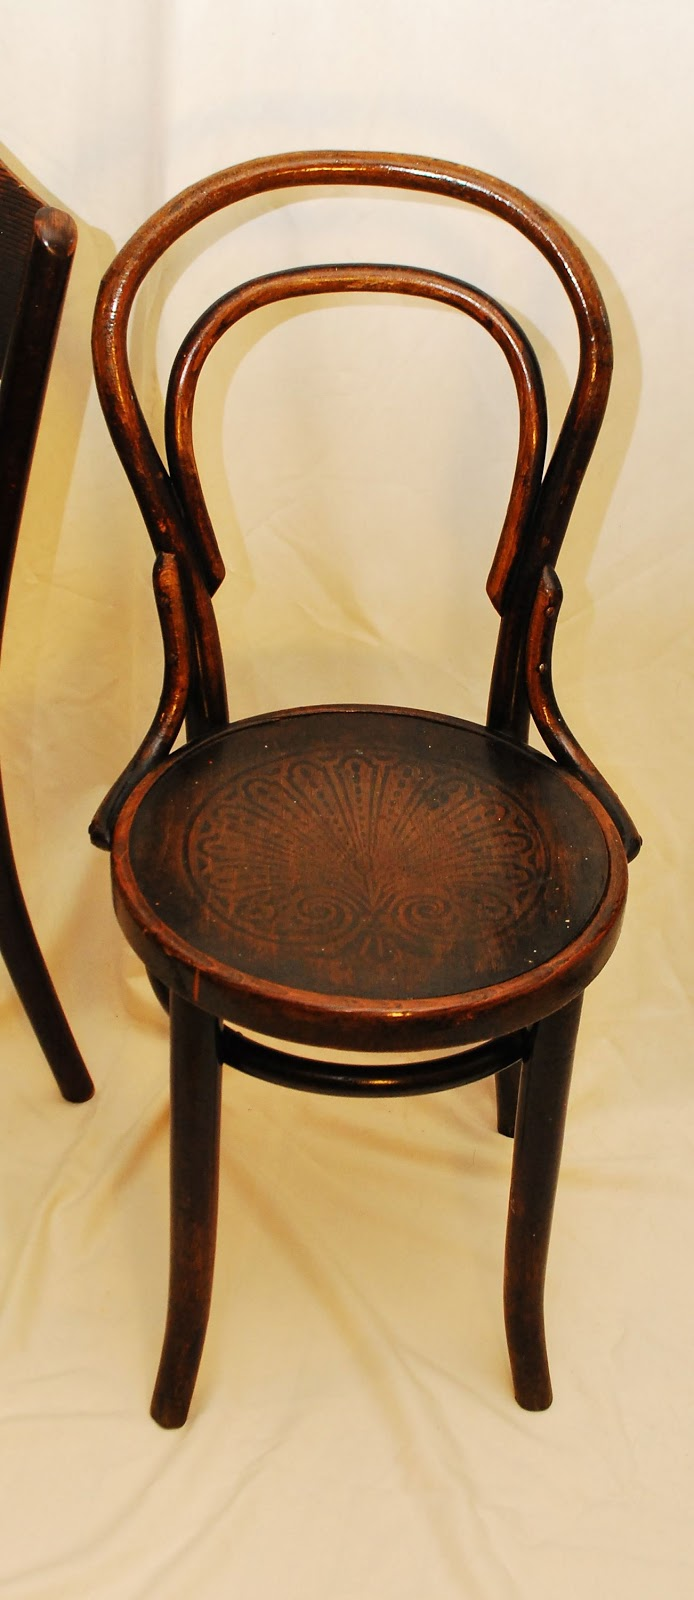 Tribute 20th Decor: Authentic Thonet Bentwood Chairs